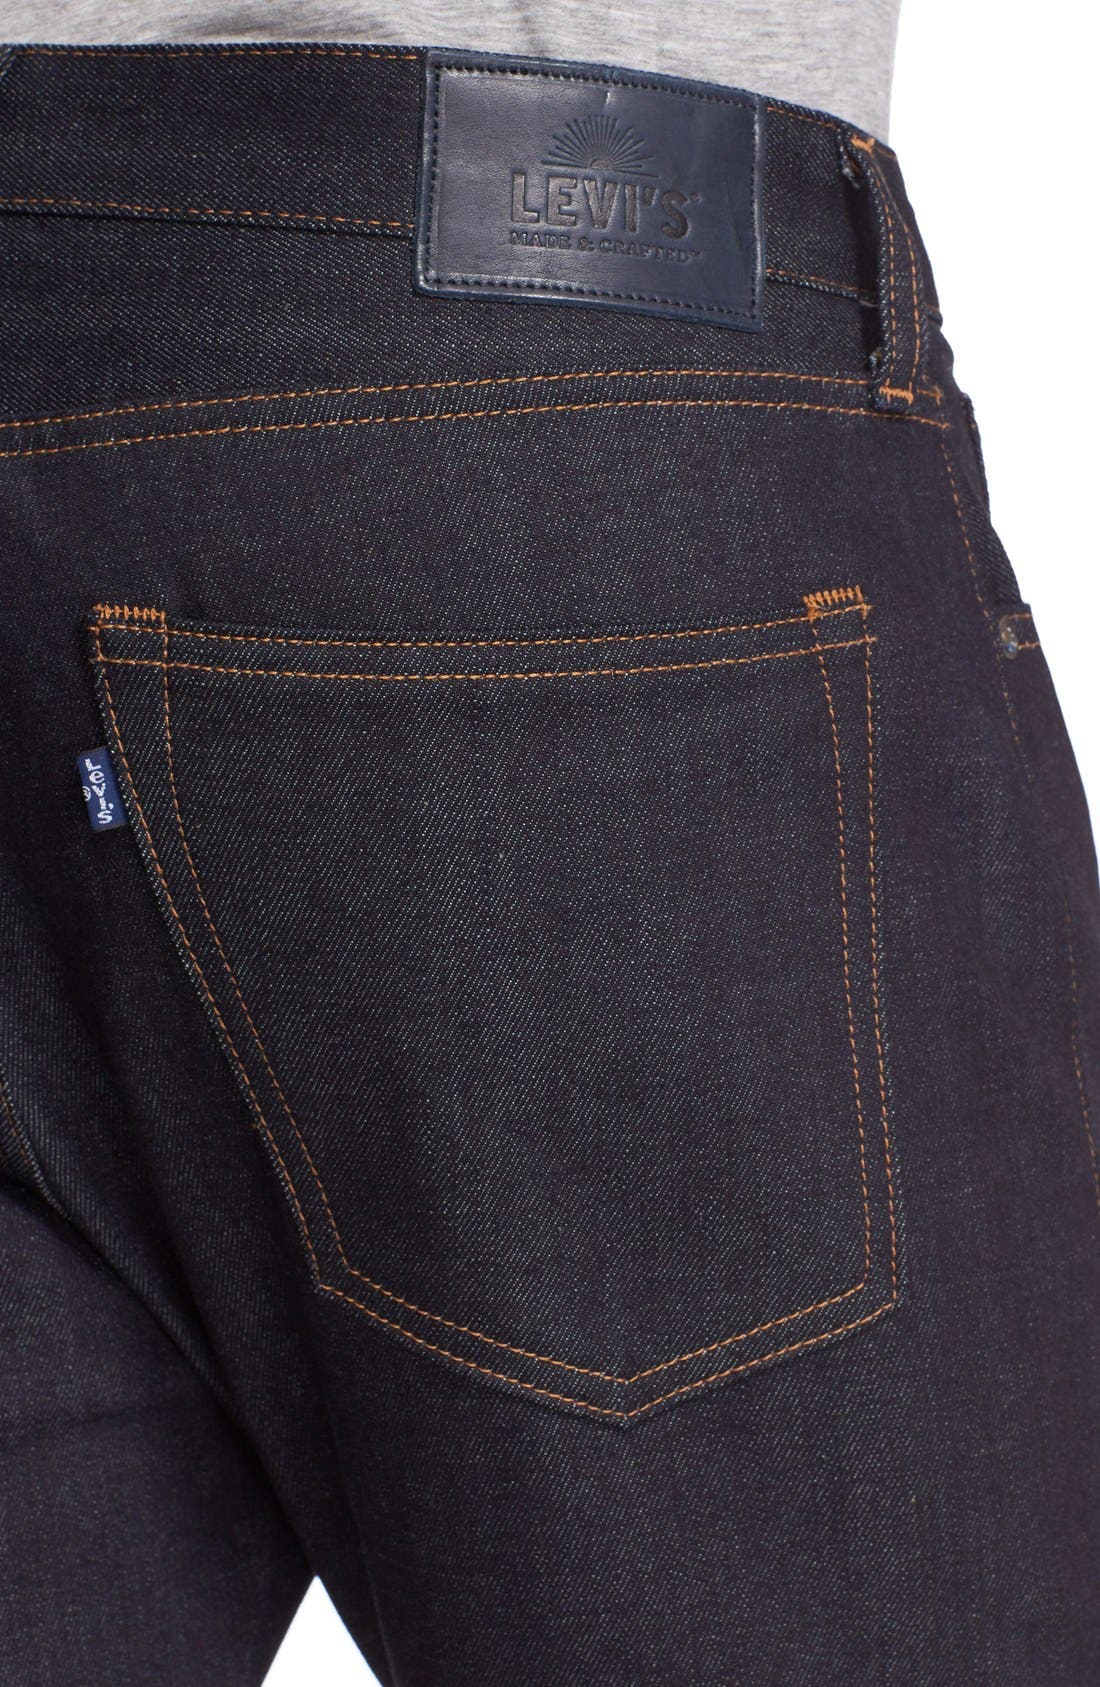 'Tack' Slim Fit Jeans,                             Alternate thumbnail 4, color,                             Indigo